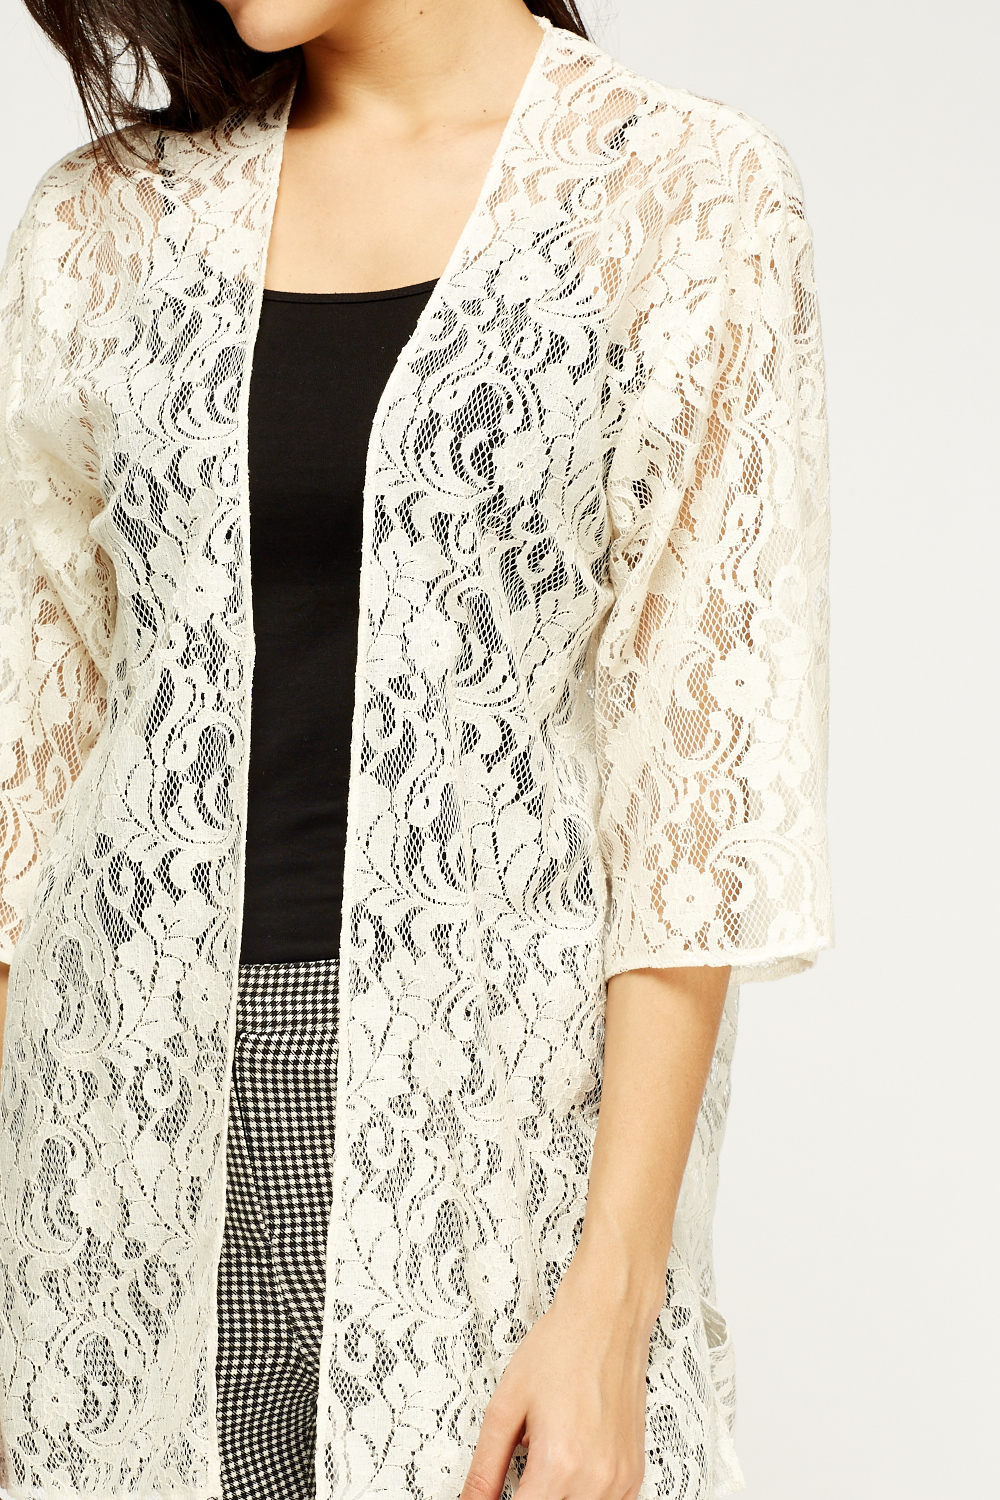 Shop for cream lace cardigan online at Target. Free shipping on purchases over $35 Styles: Jackets, Active wear, Maternity, Dresses, Jeans, Pants, Shirts, Shorts, Skirts.